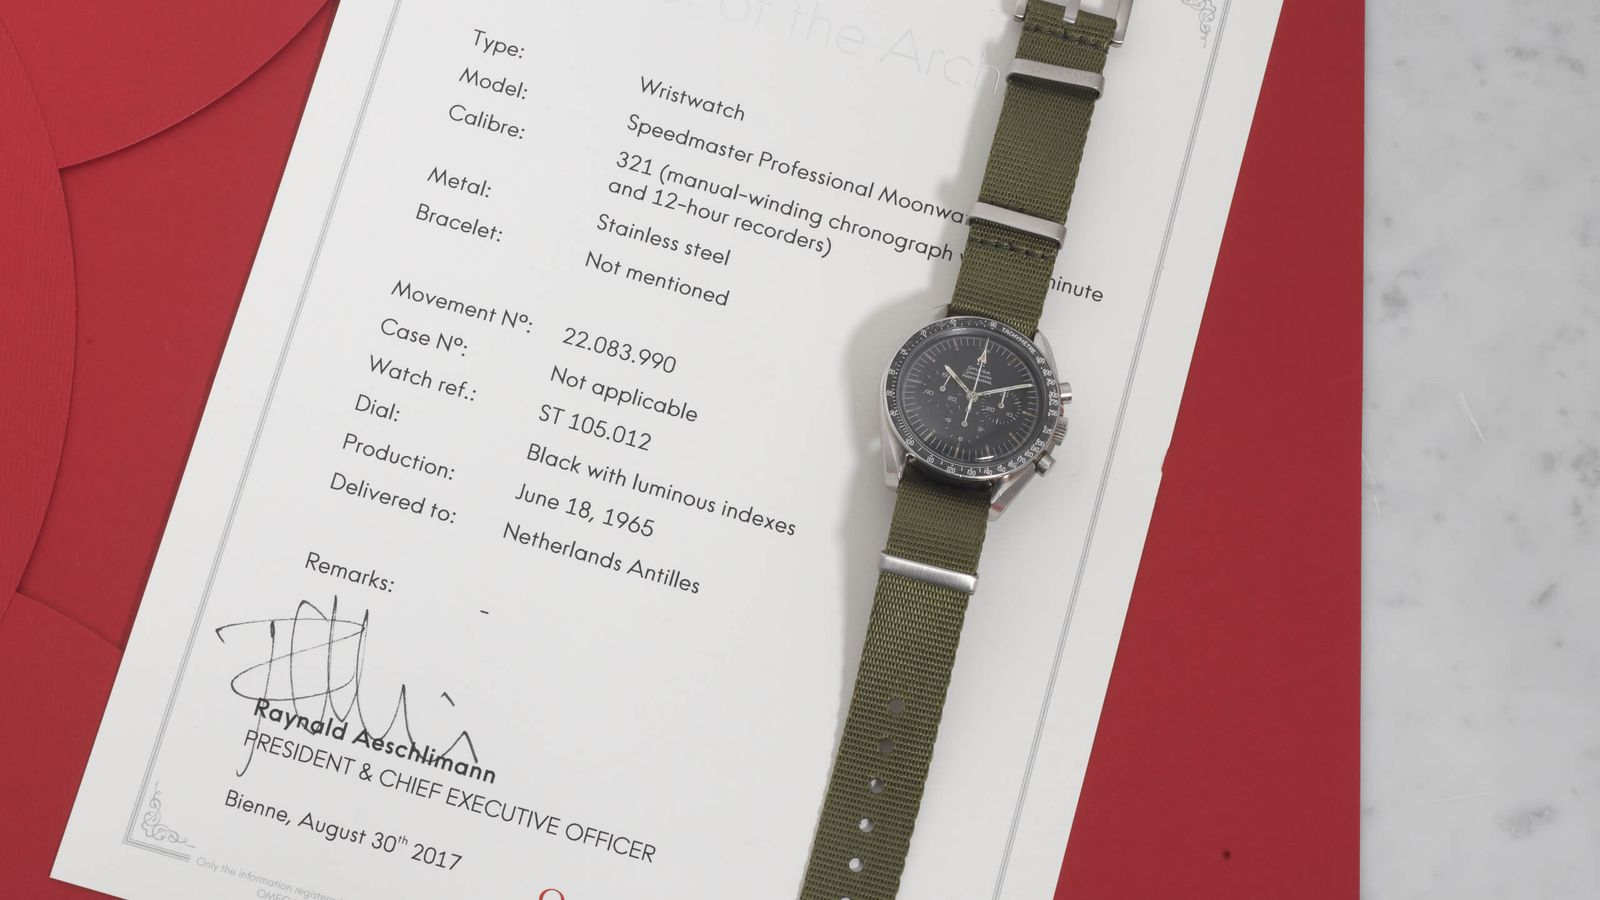 Omega Omega Speedmaster 105.012-64 delivered to the Dutch Antilles